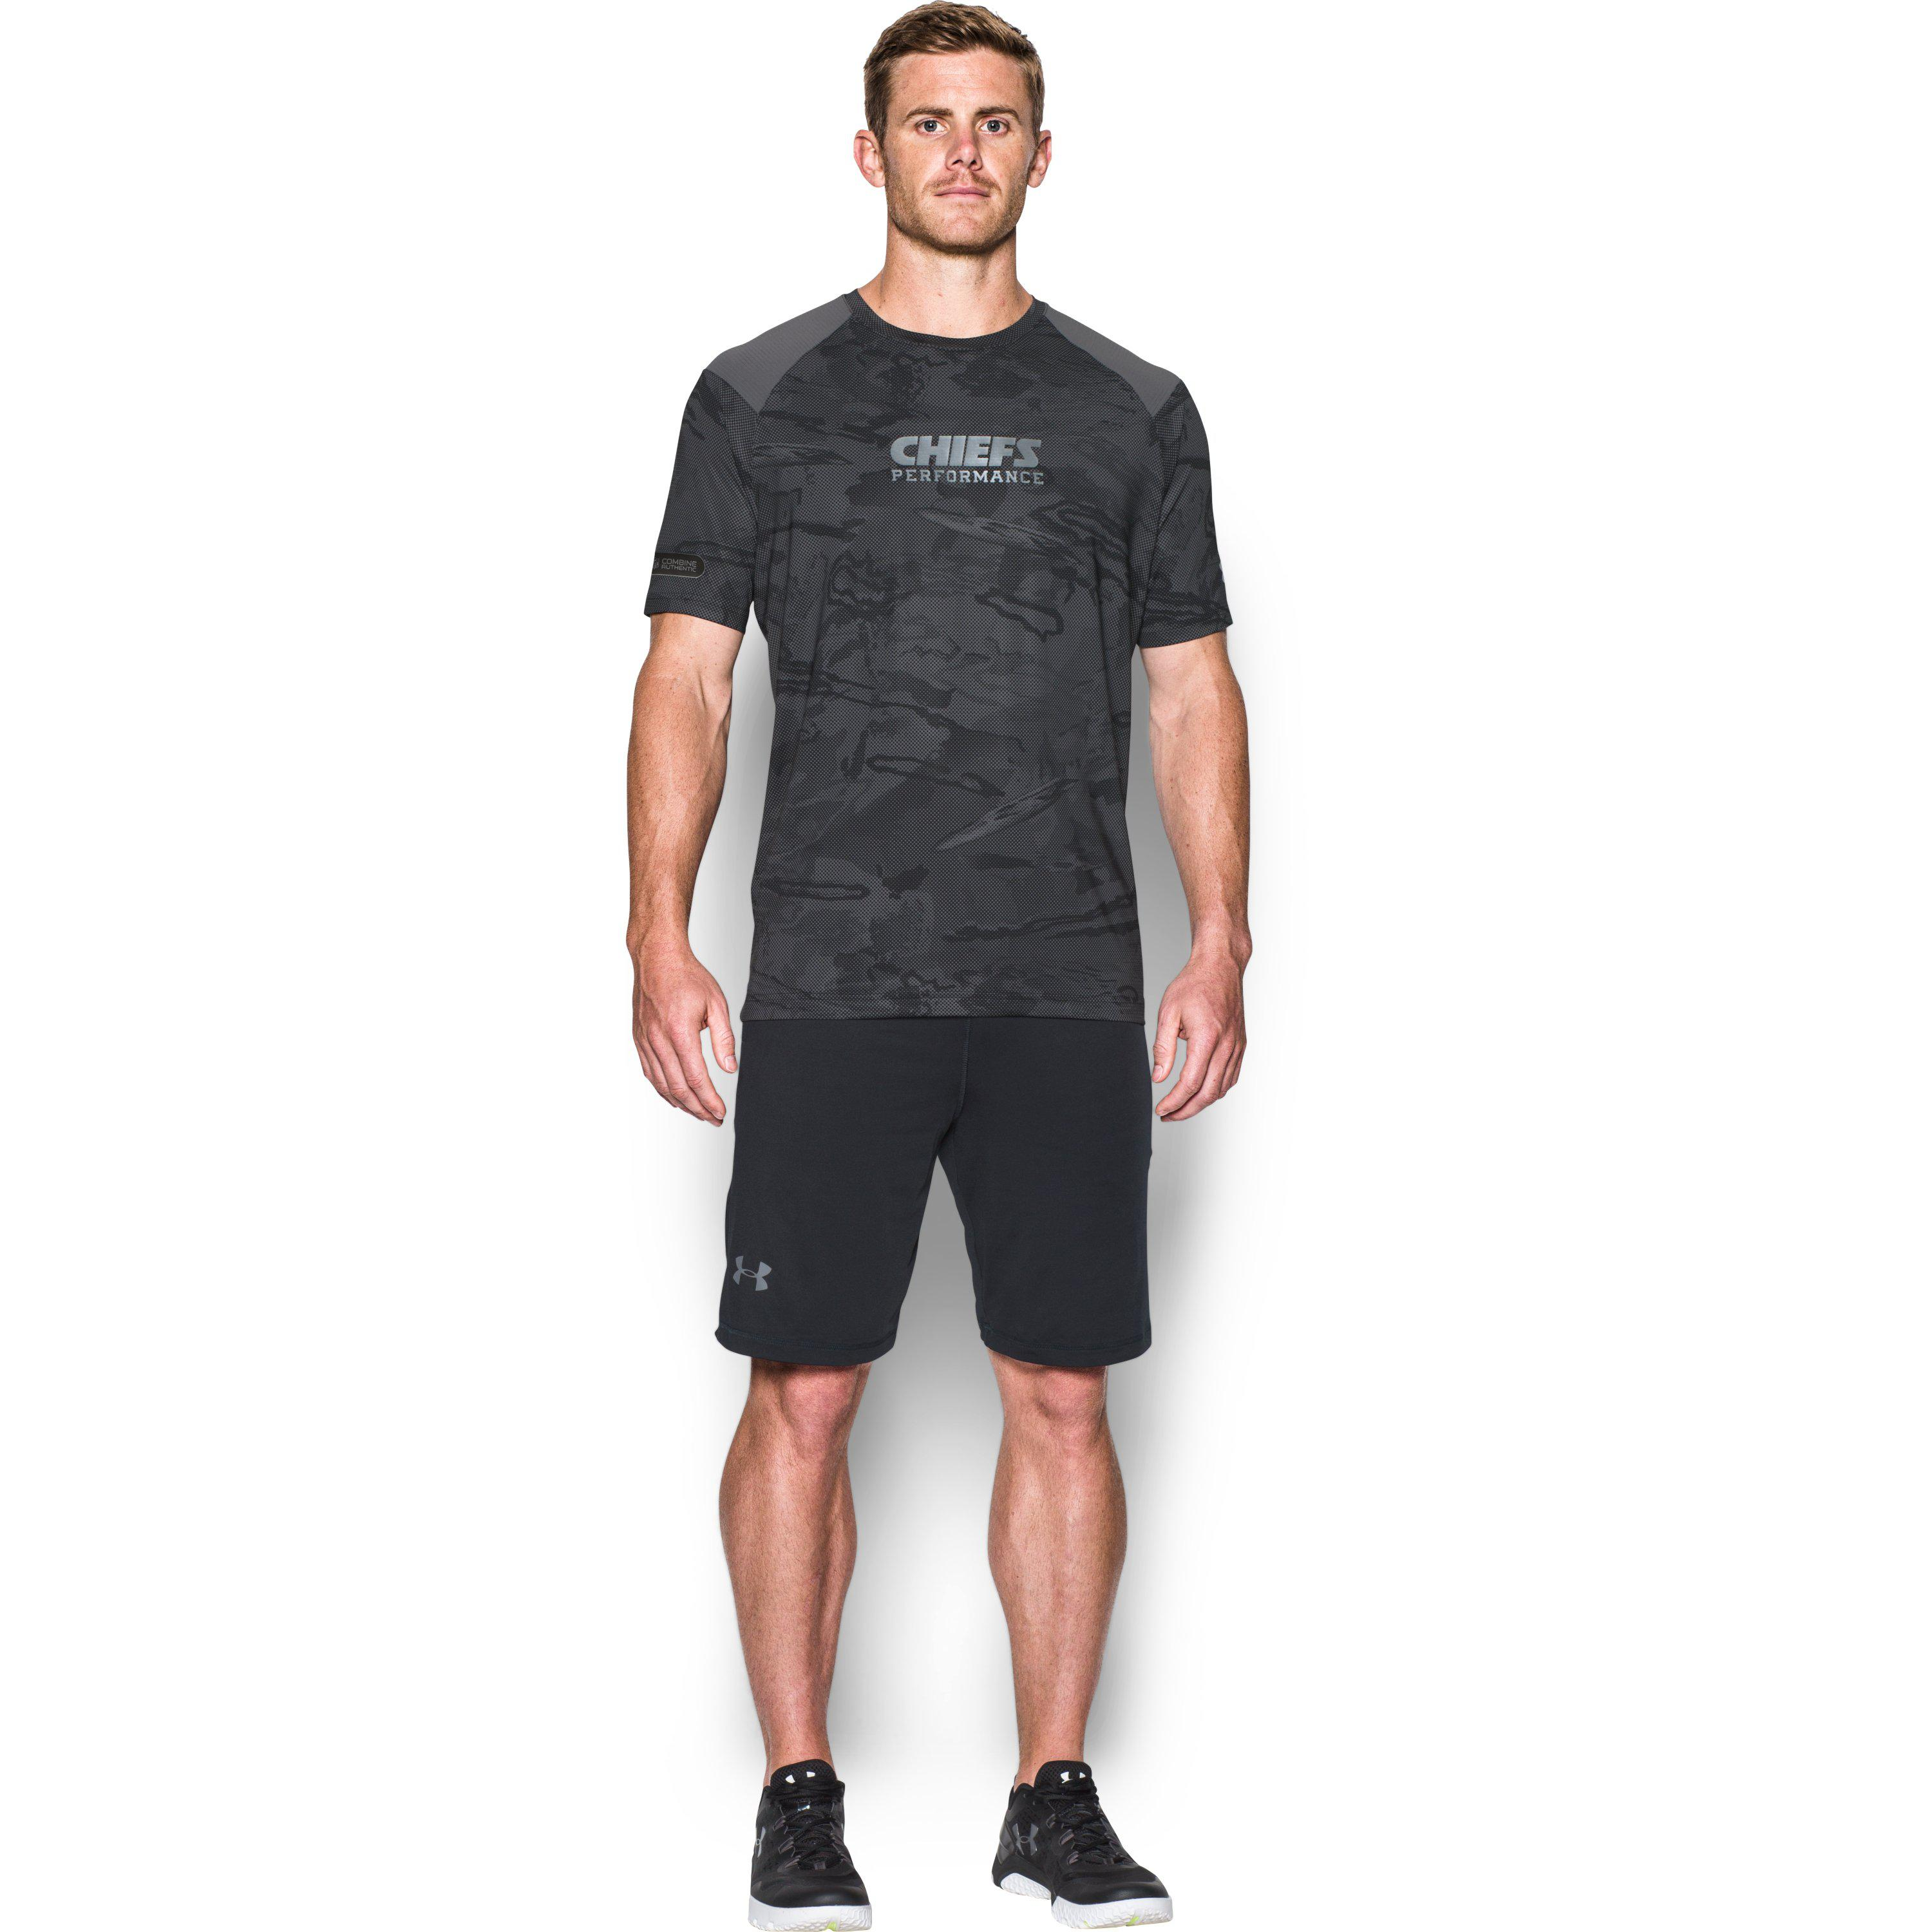 Lyst - Under Armour Men s Nfl Combine Authentic Ua Pinnacle Printed ... f95070cf8